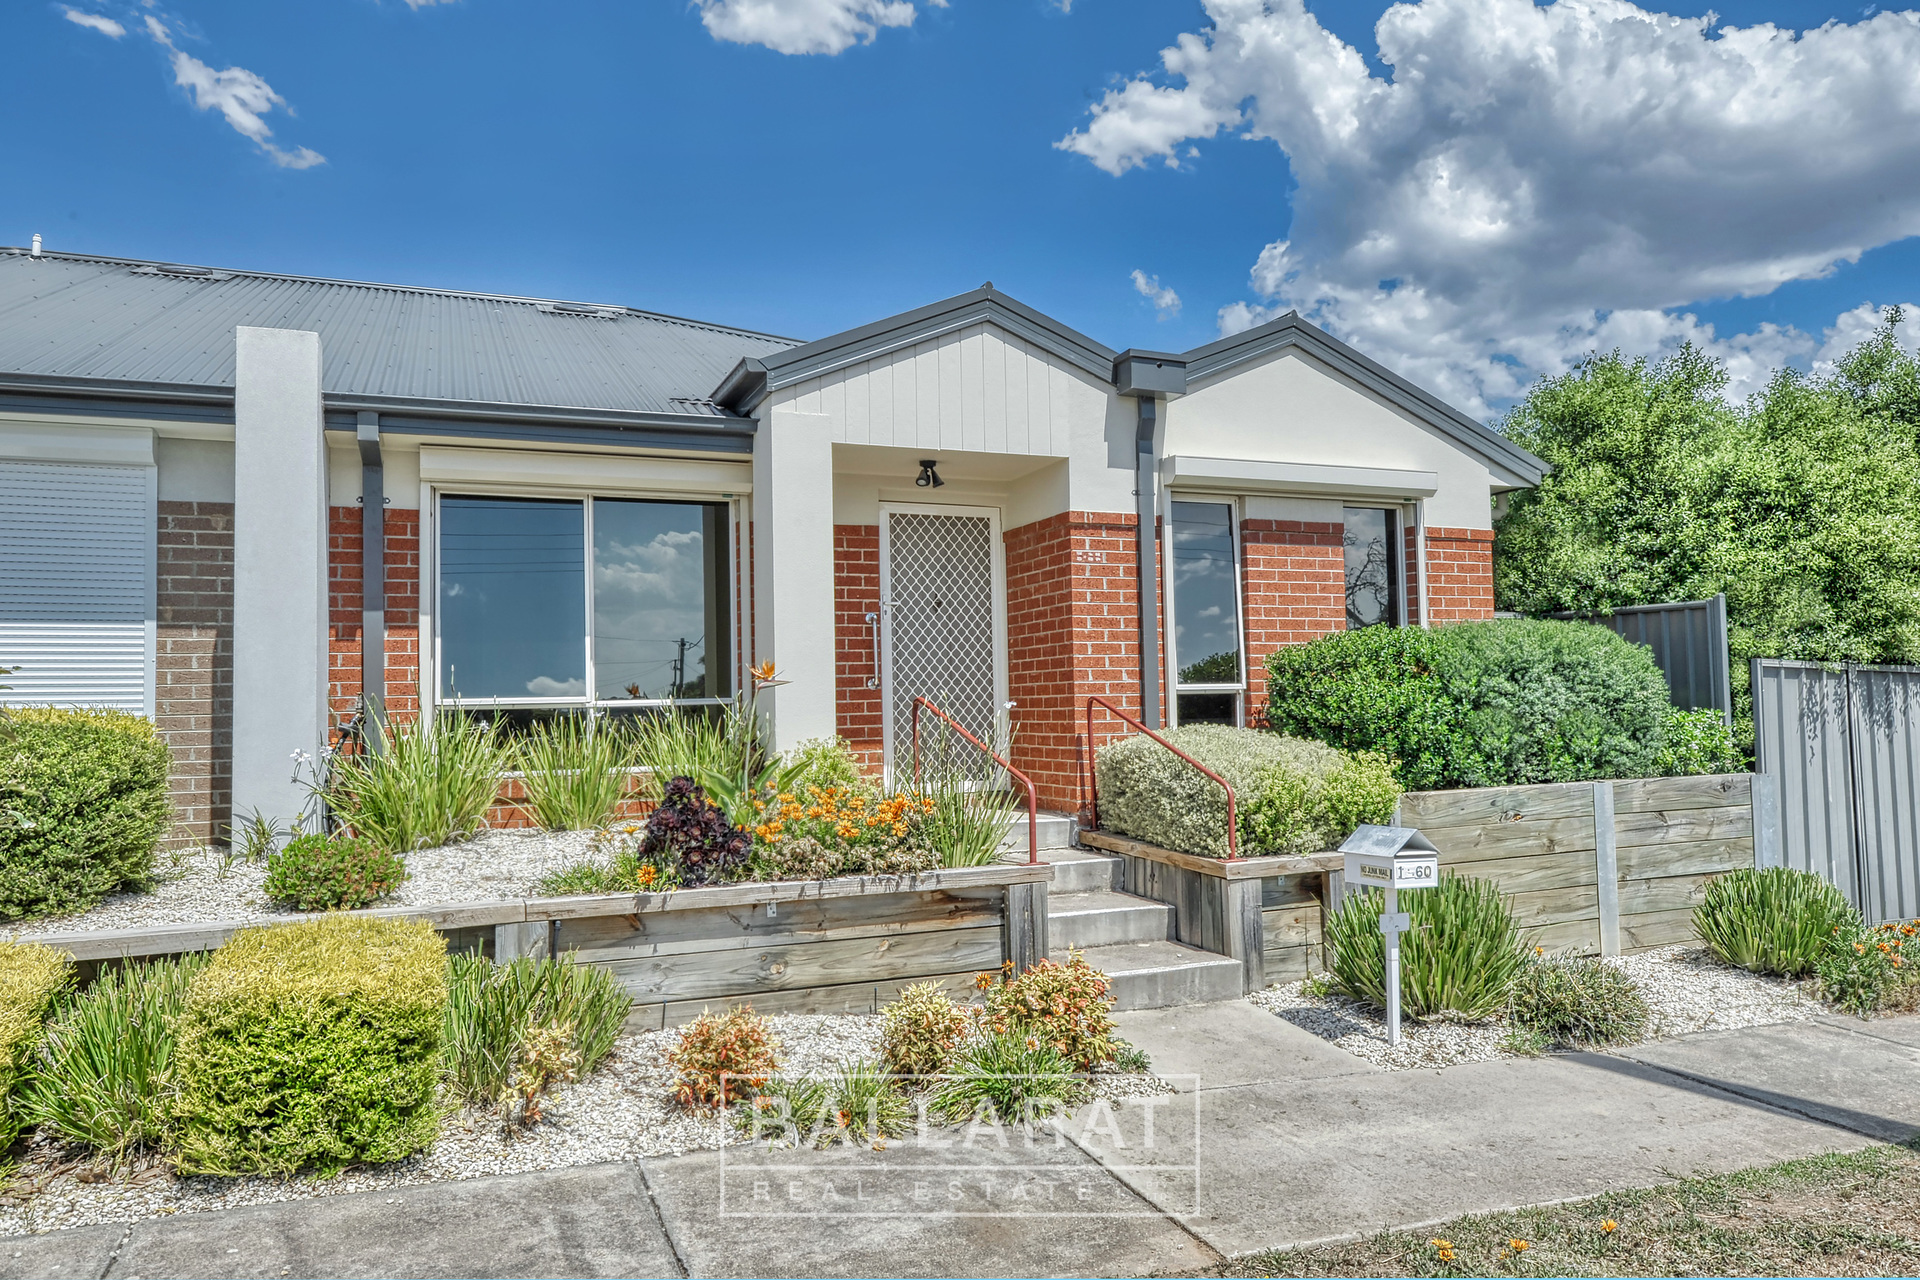 1/60 Gillies Street Maryborough